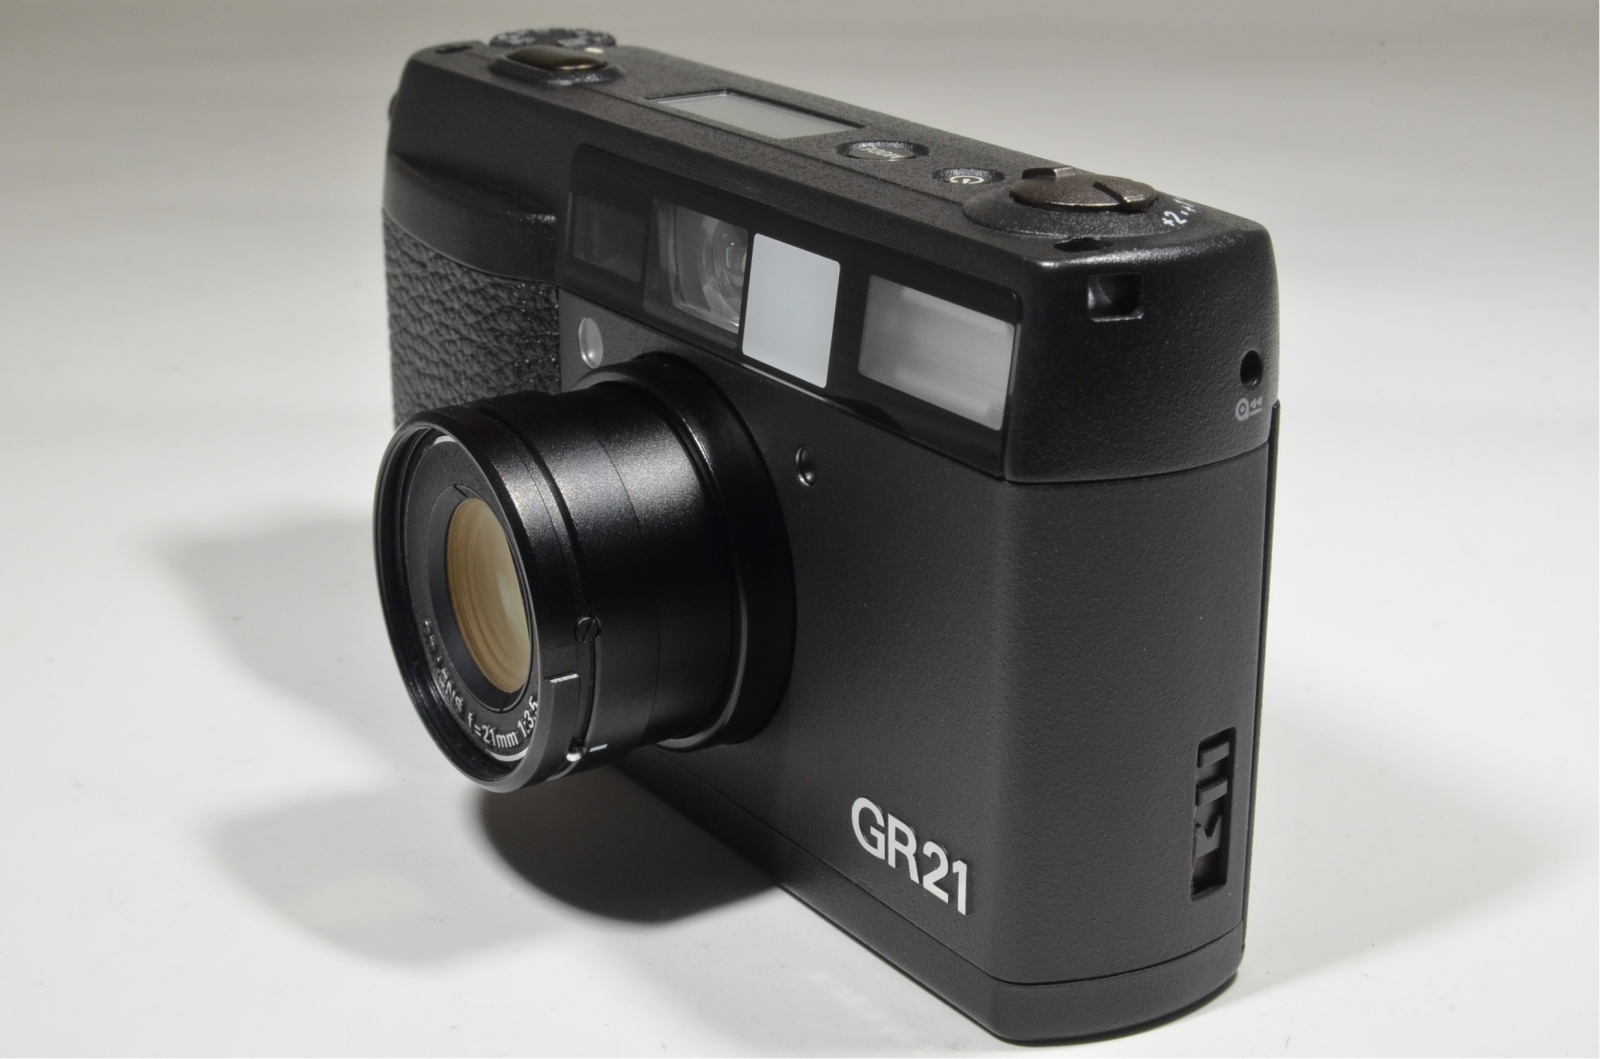 ricoh gr21 35mm point & shoot film camera